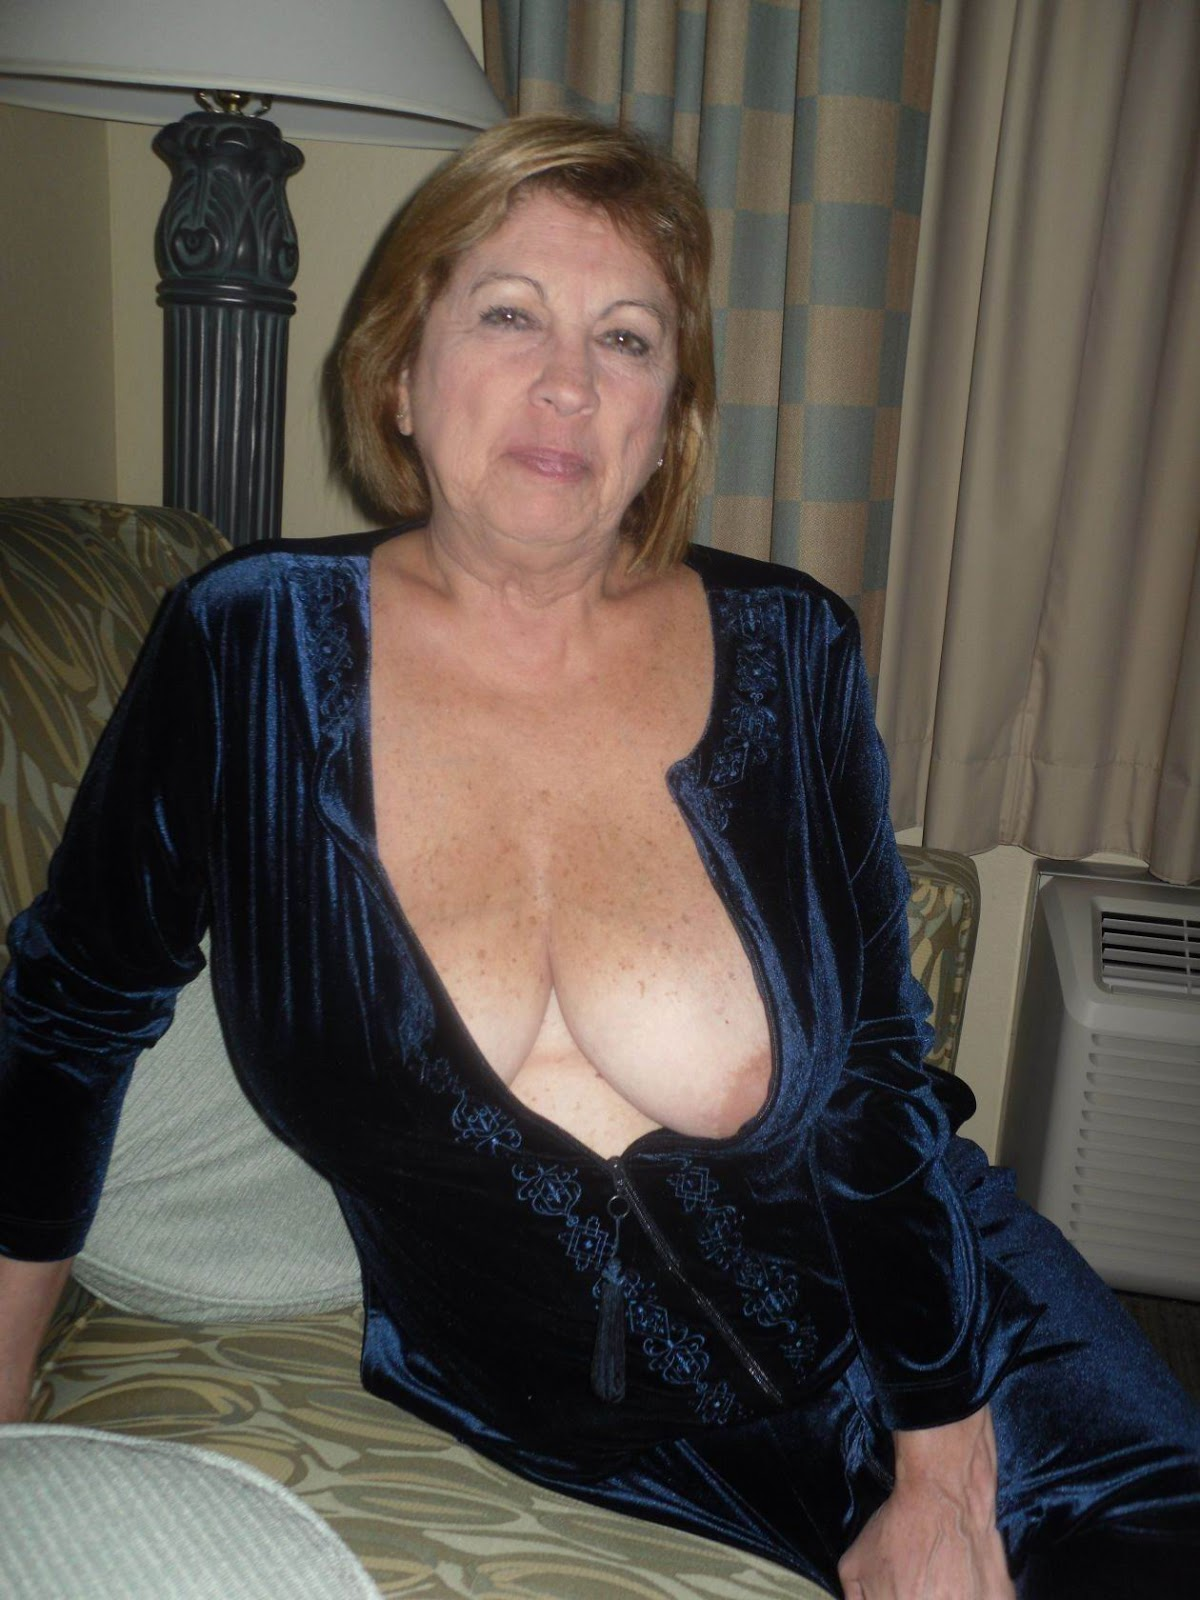 Archive Of Old Women Granny Porn Images Mix-3901